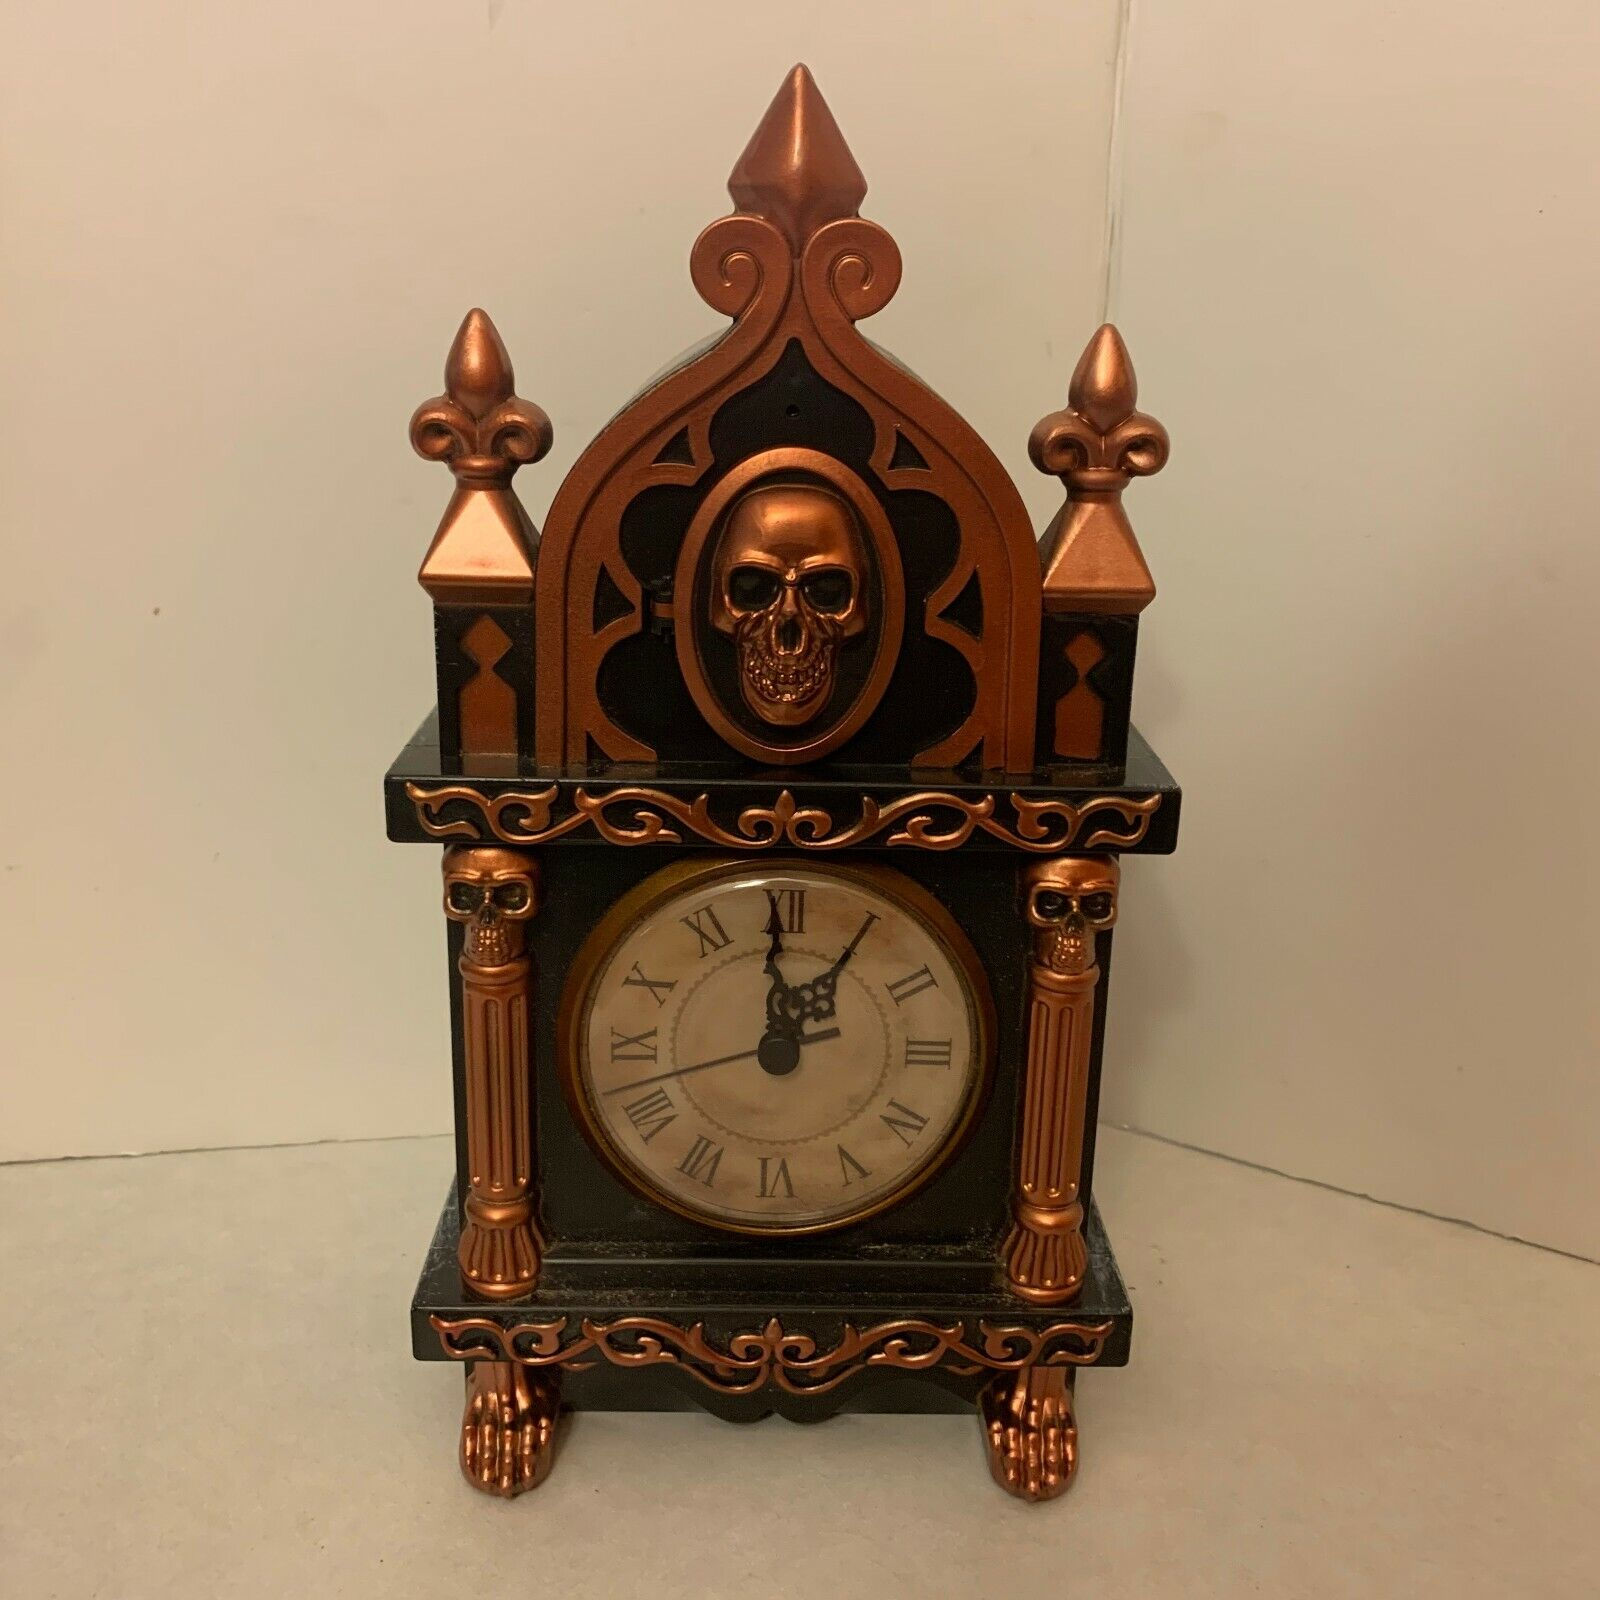 Hyde and Eek! Halloween - Haunted Raven Clock - Sound Activated Antique Style